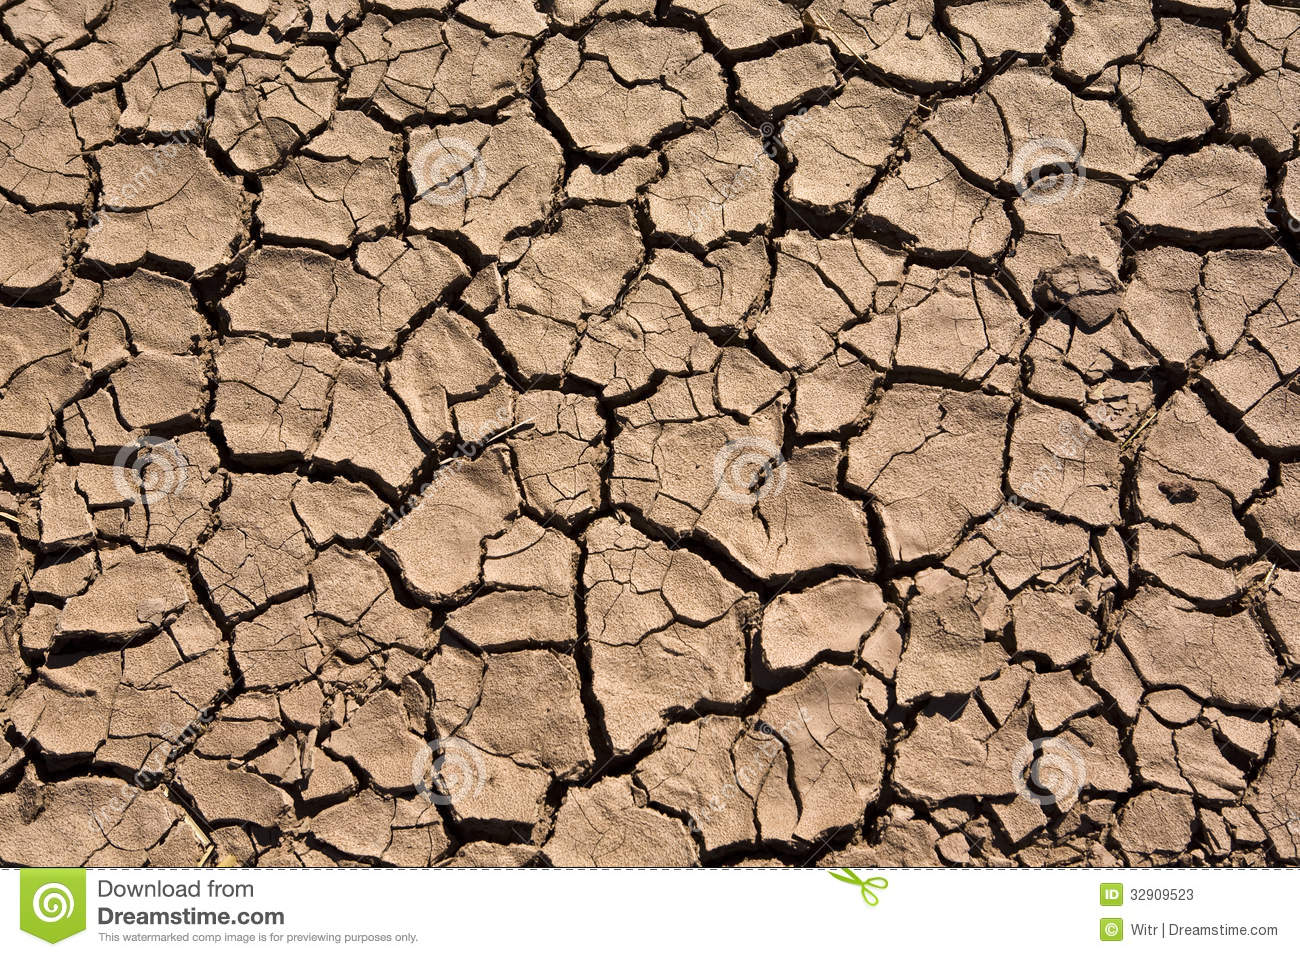 Cracked Earth Stock Photos - Image: 32909523